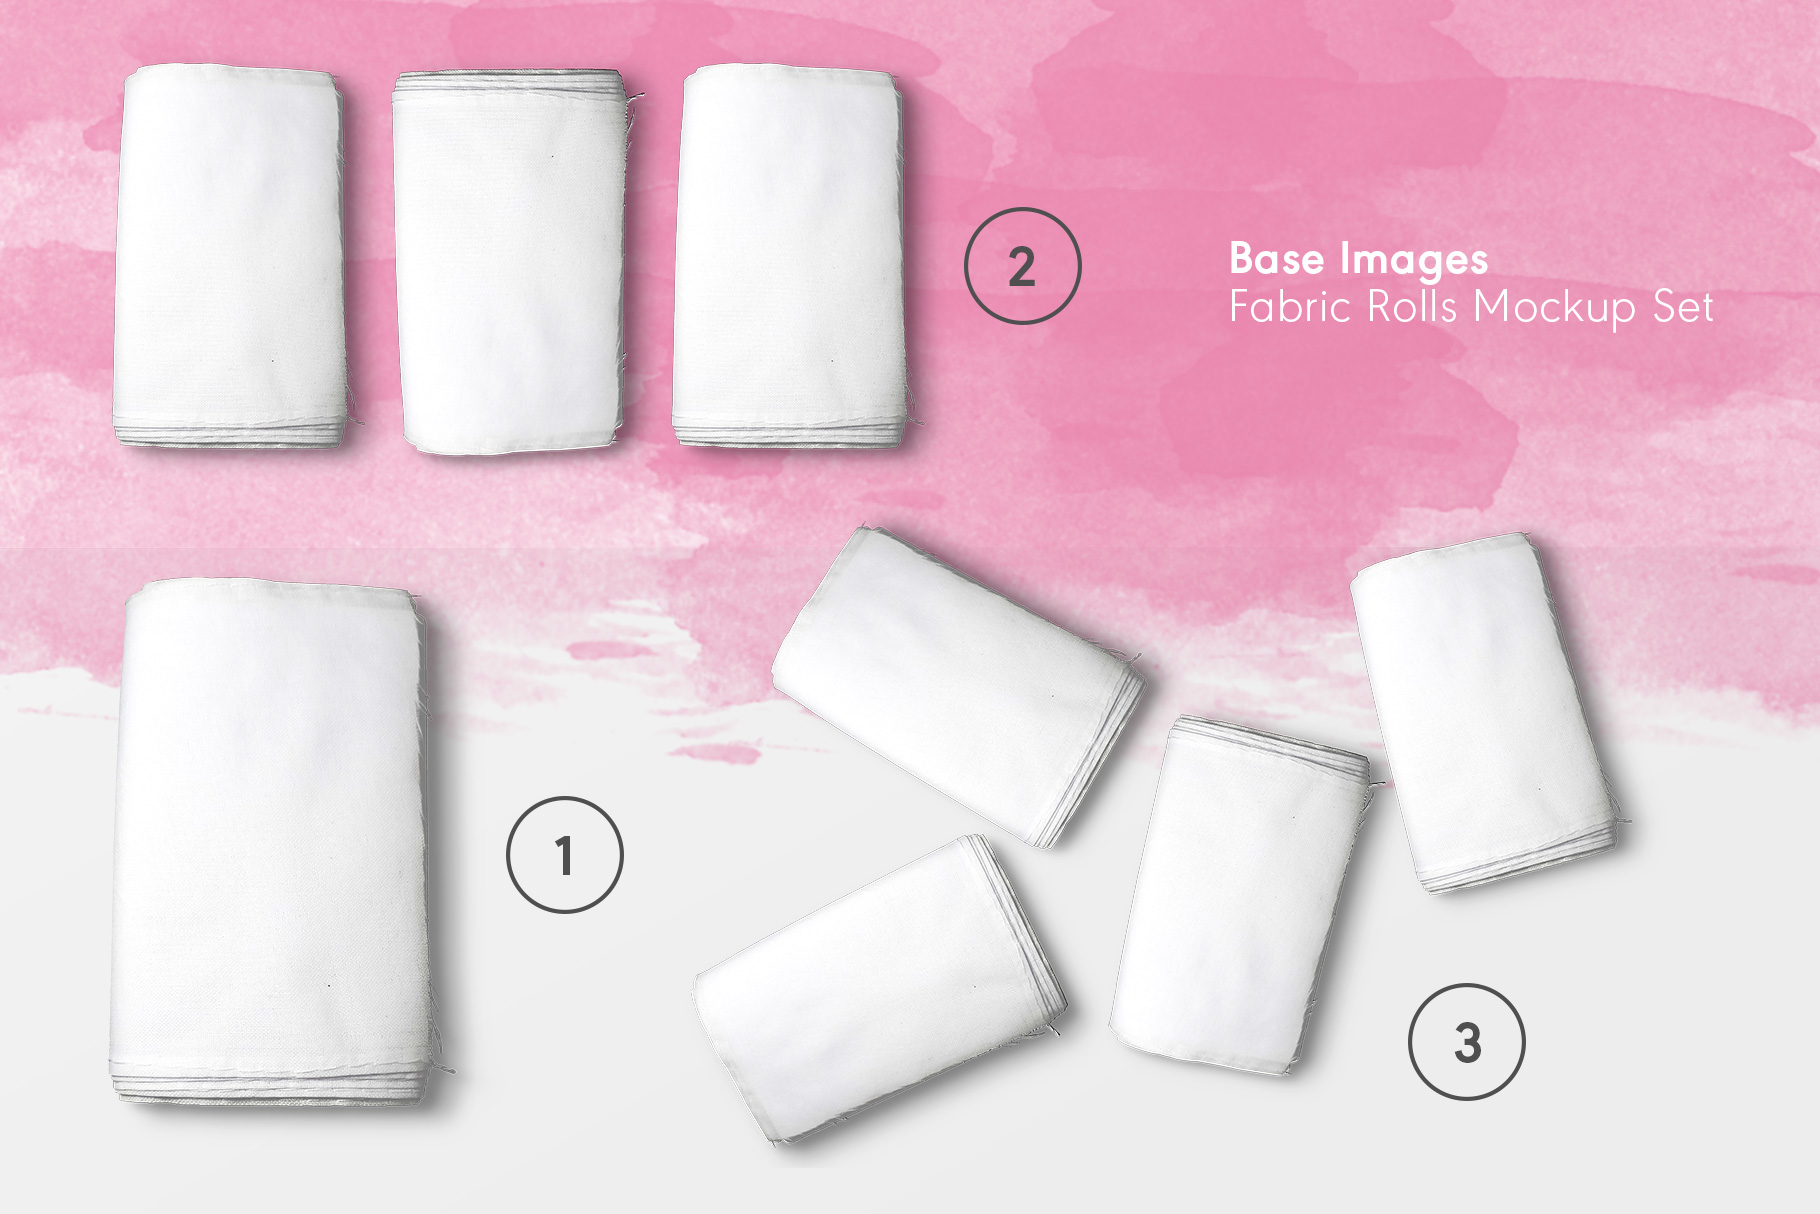 base images of the top view fabric rolls mockup set